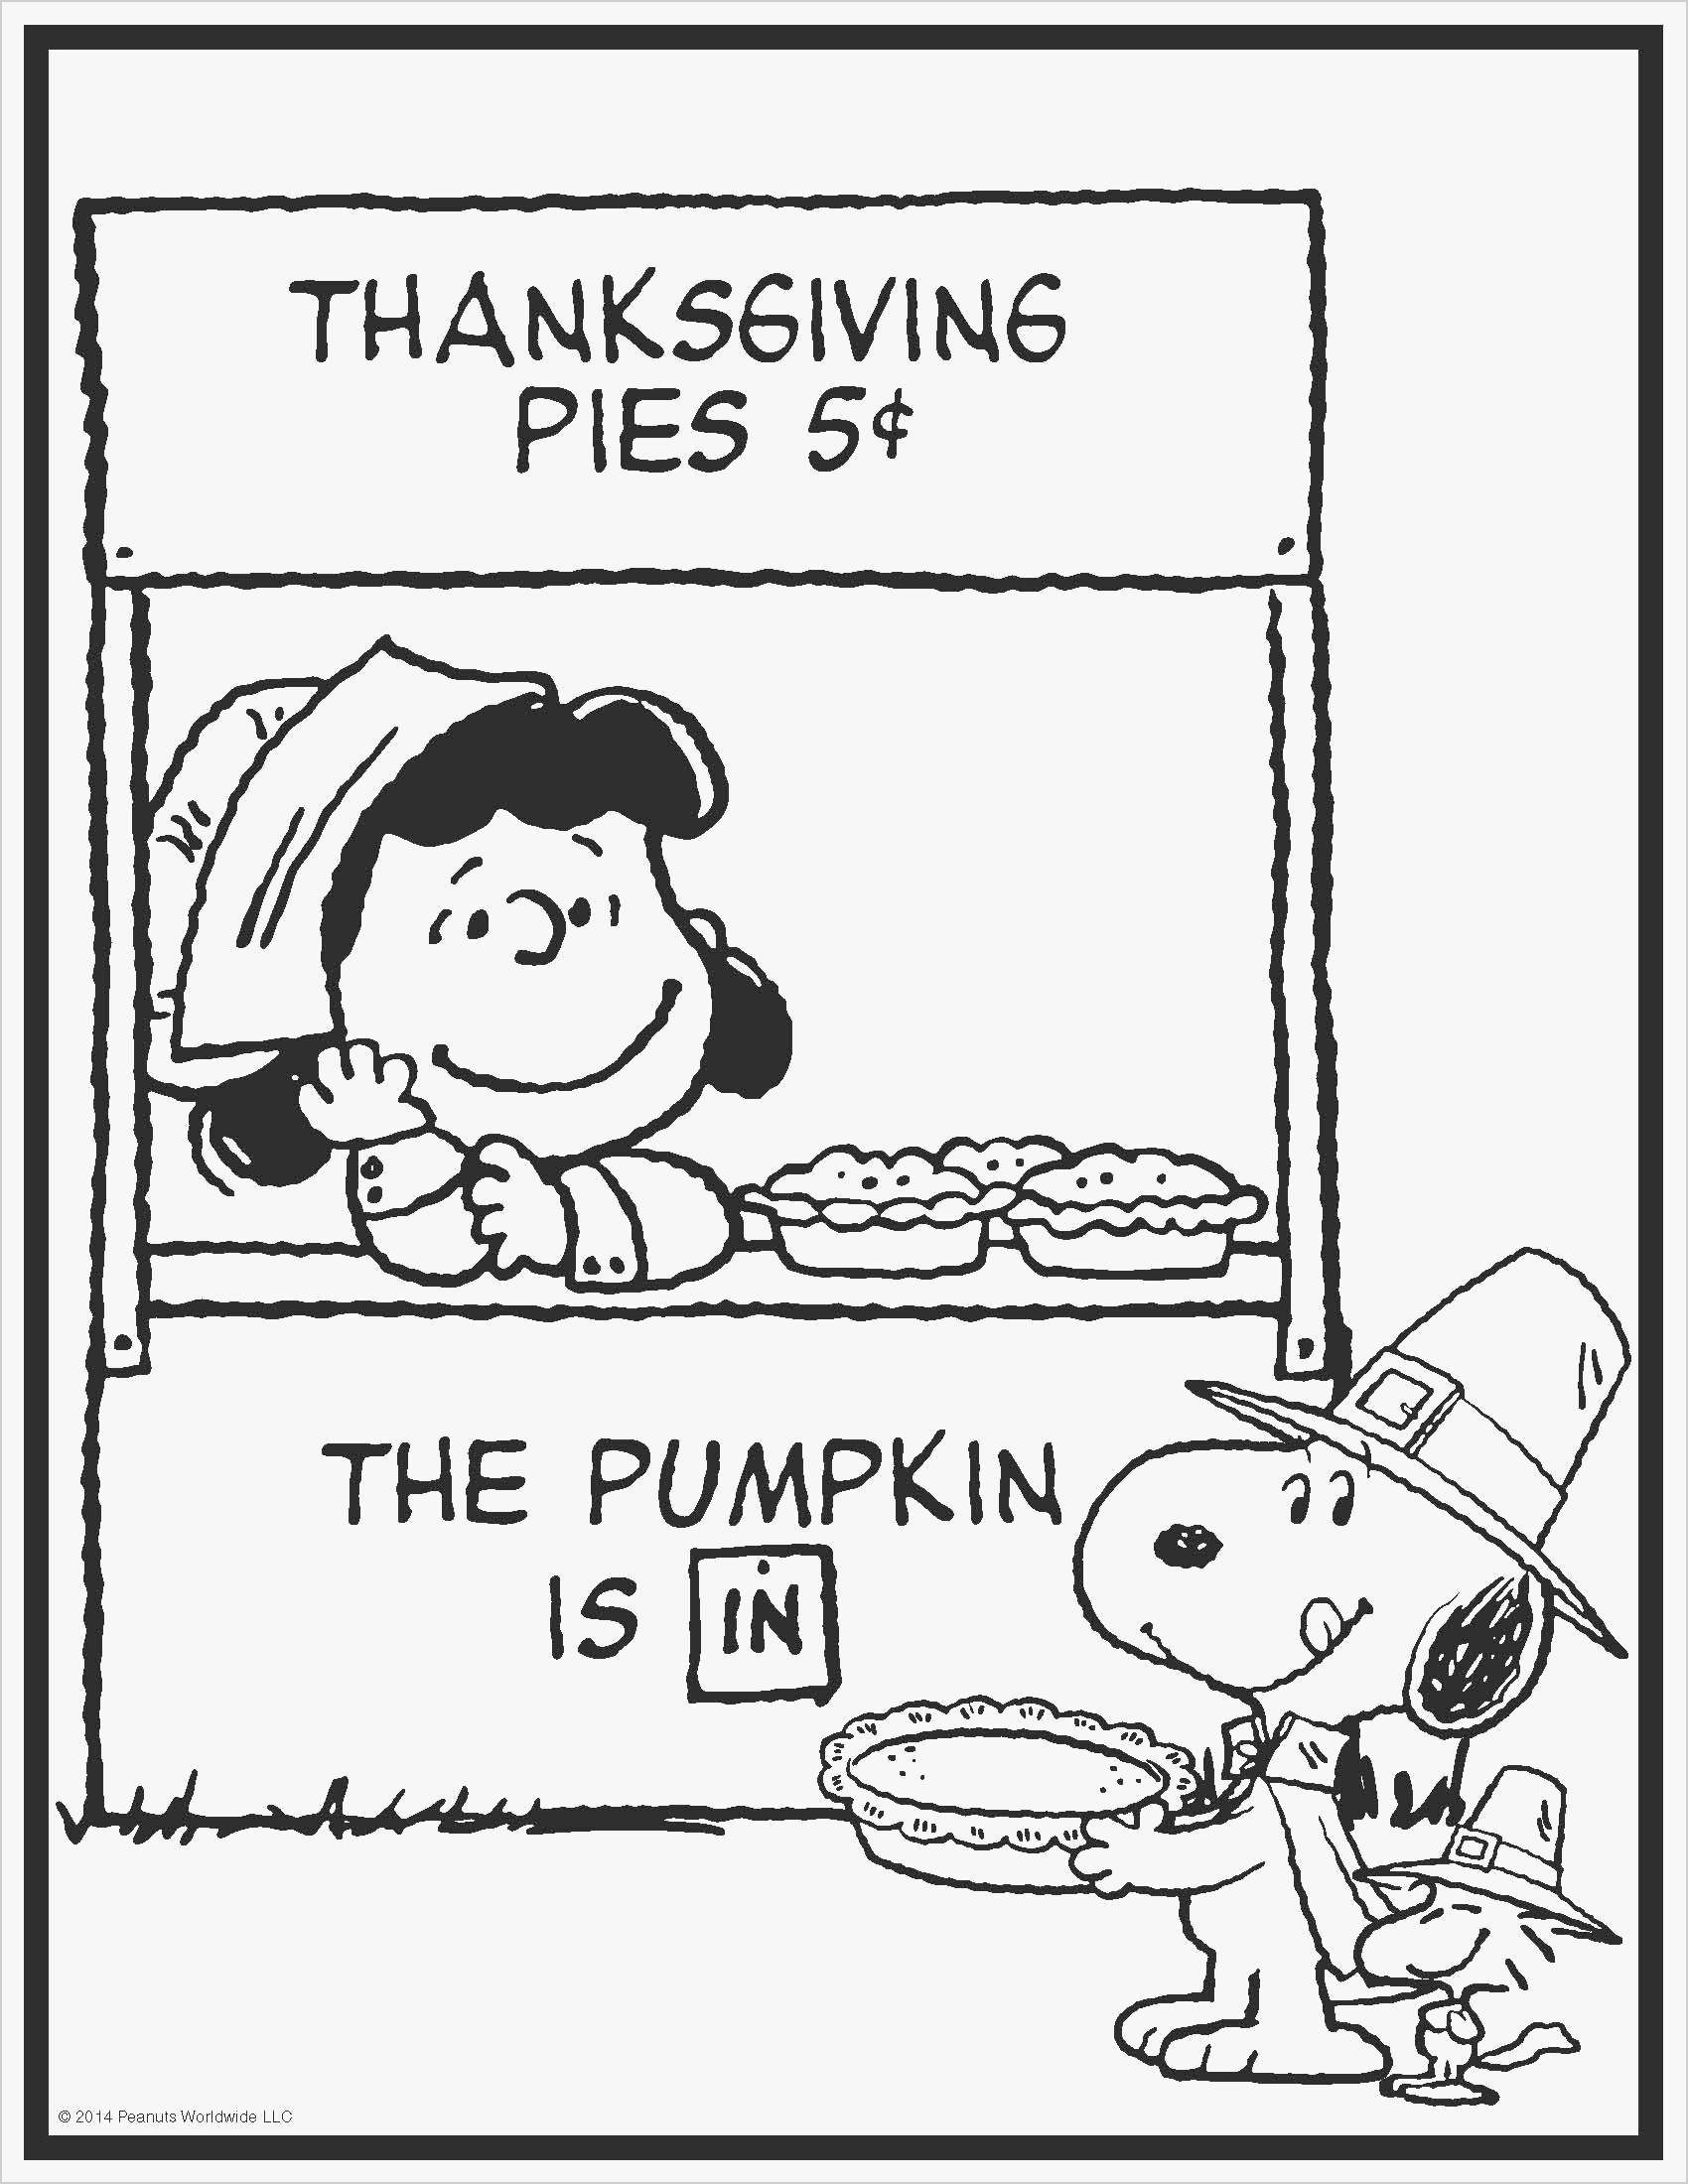 25 Best Image Of Peanuts Coloring Pages Davemelillo Com Snoopy Coloring Pages Thanksgiving Coloring Pages Fall Coloring Pages